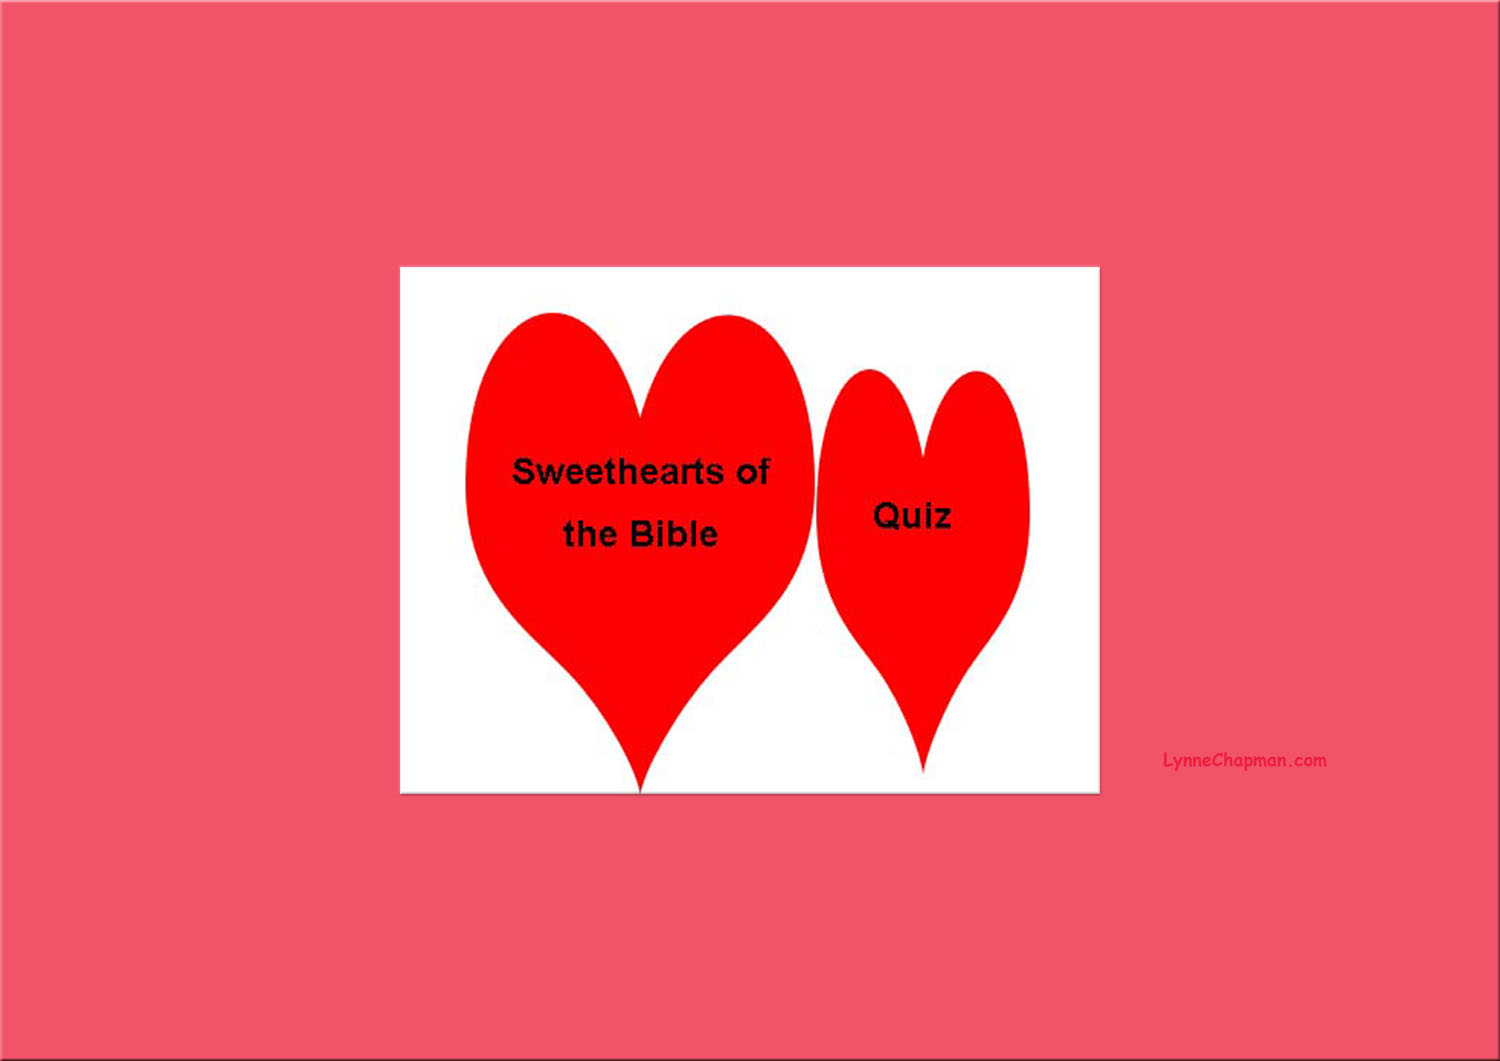 Sweethearts of the Bible Quiz